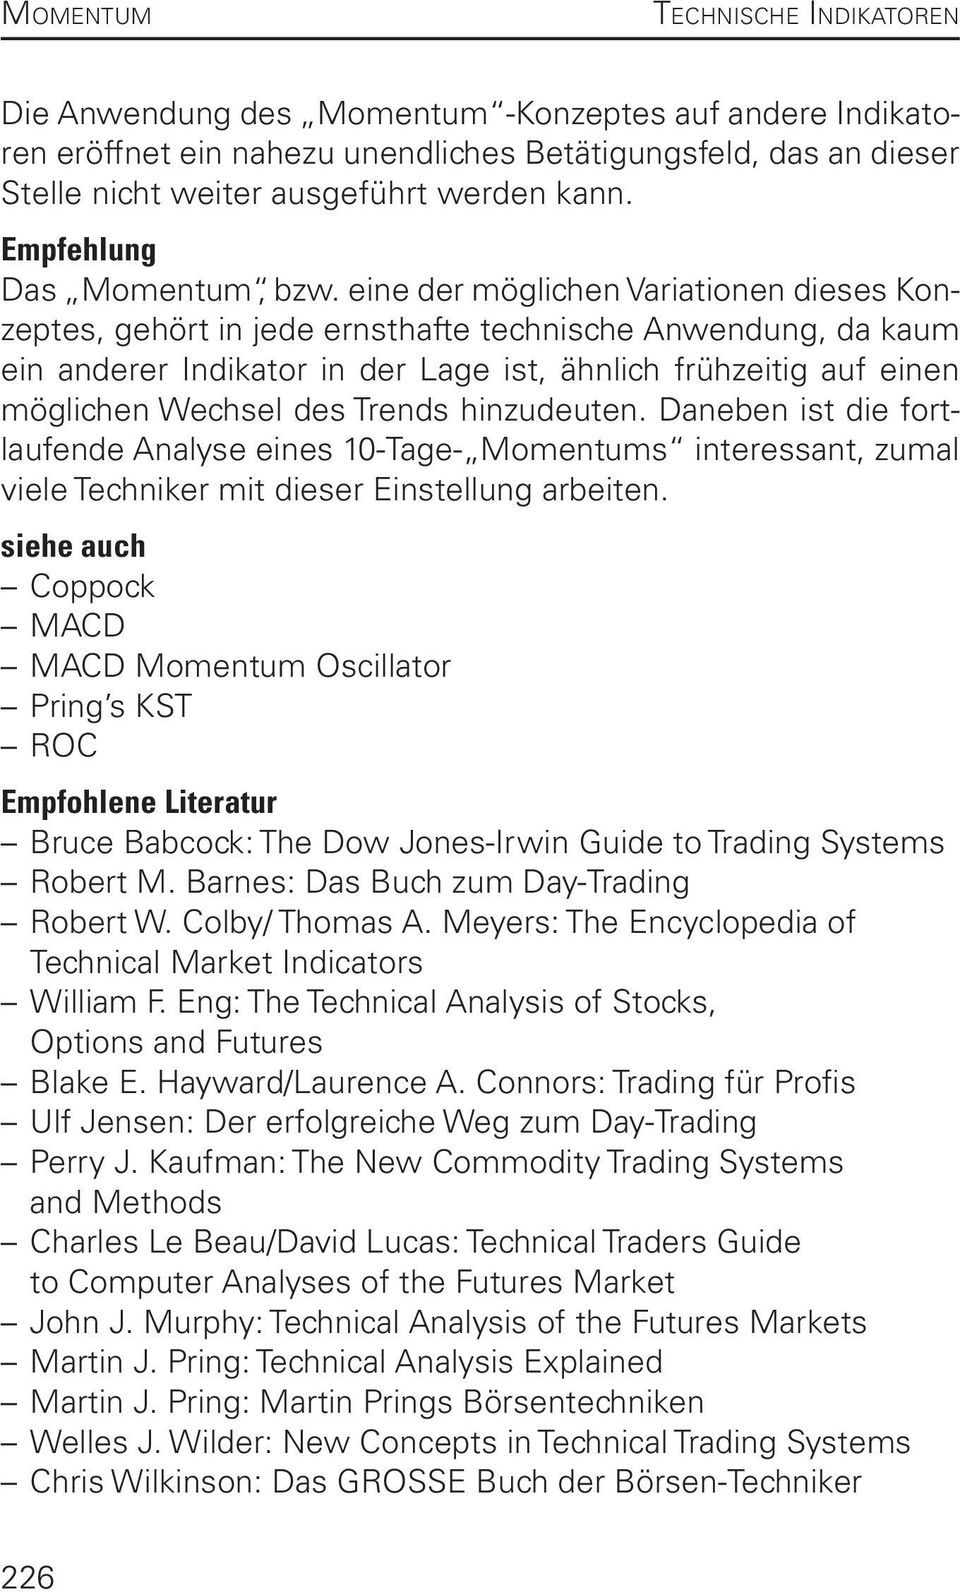 New trading systems and methods kaufman pdf